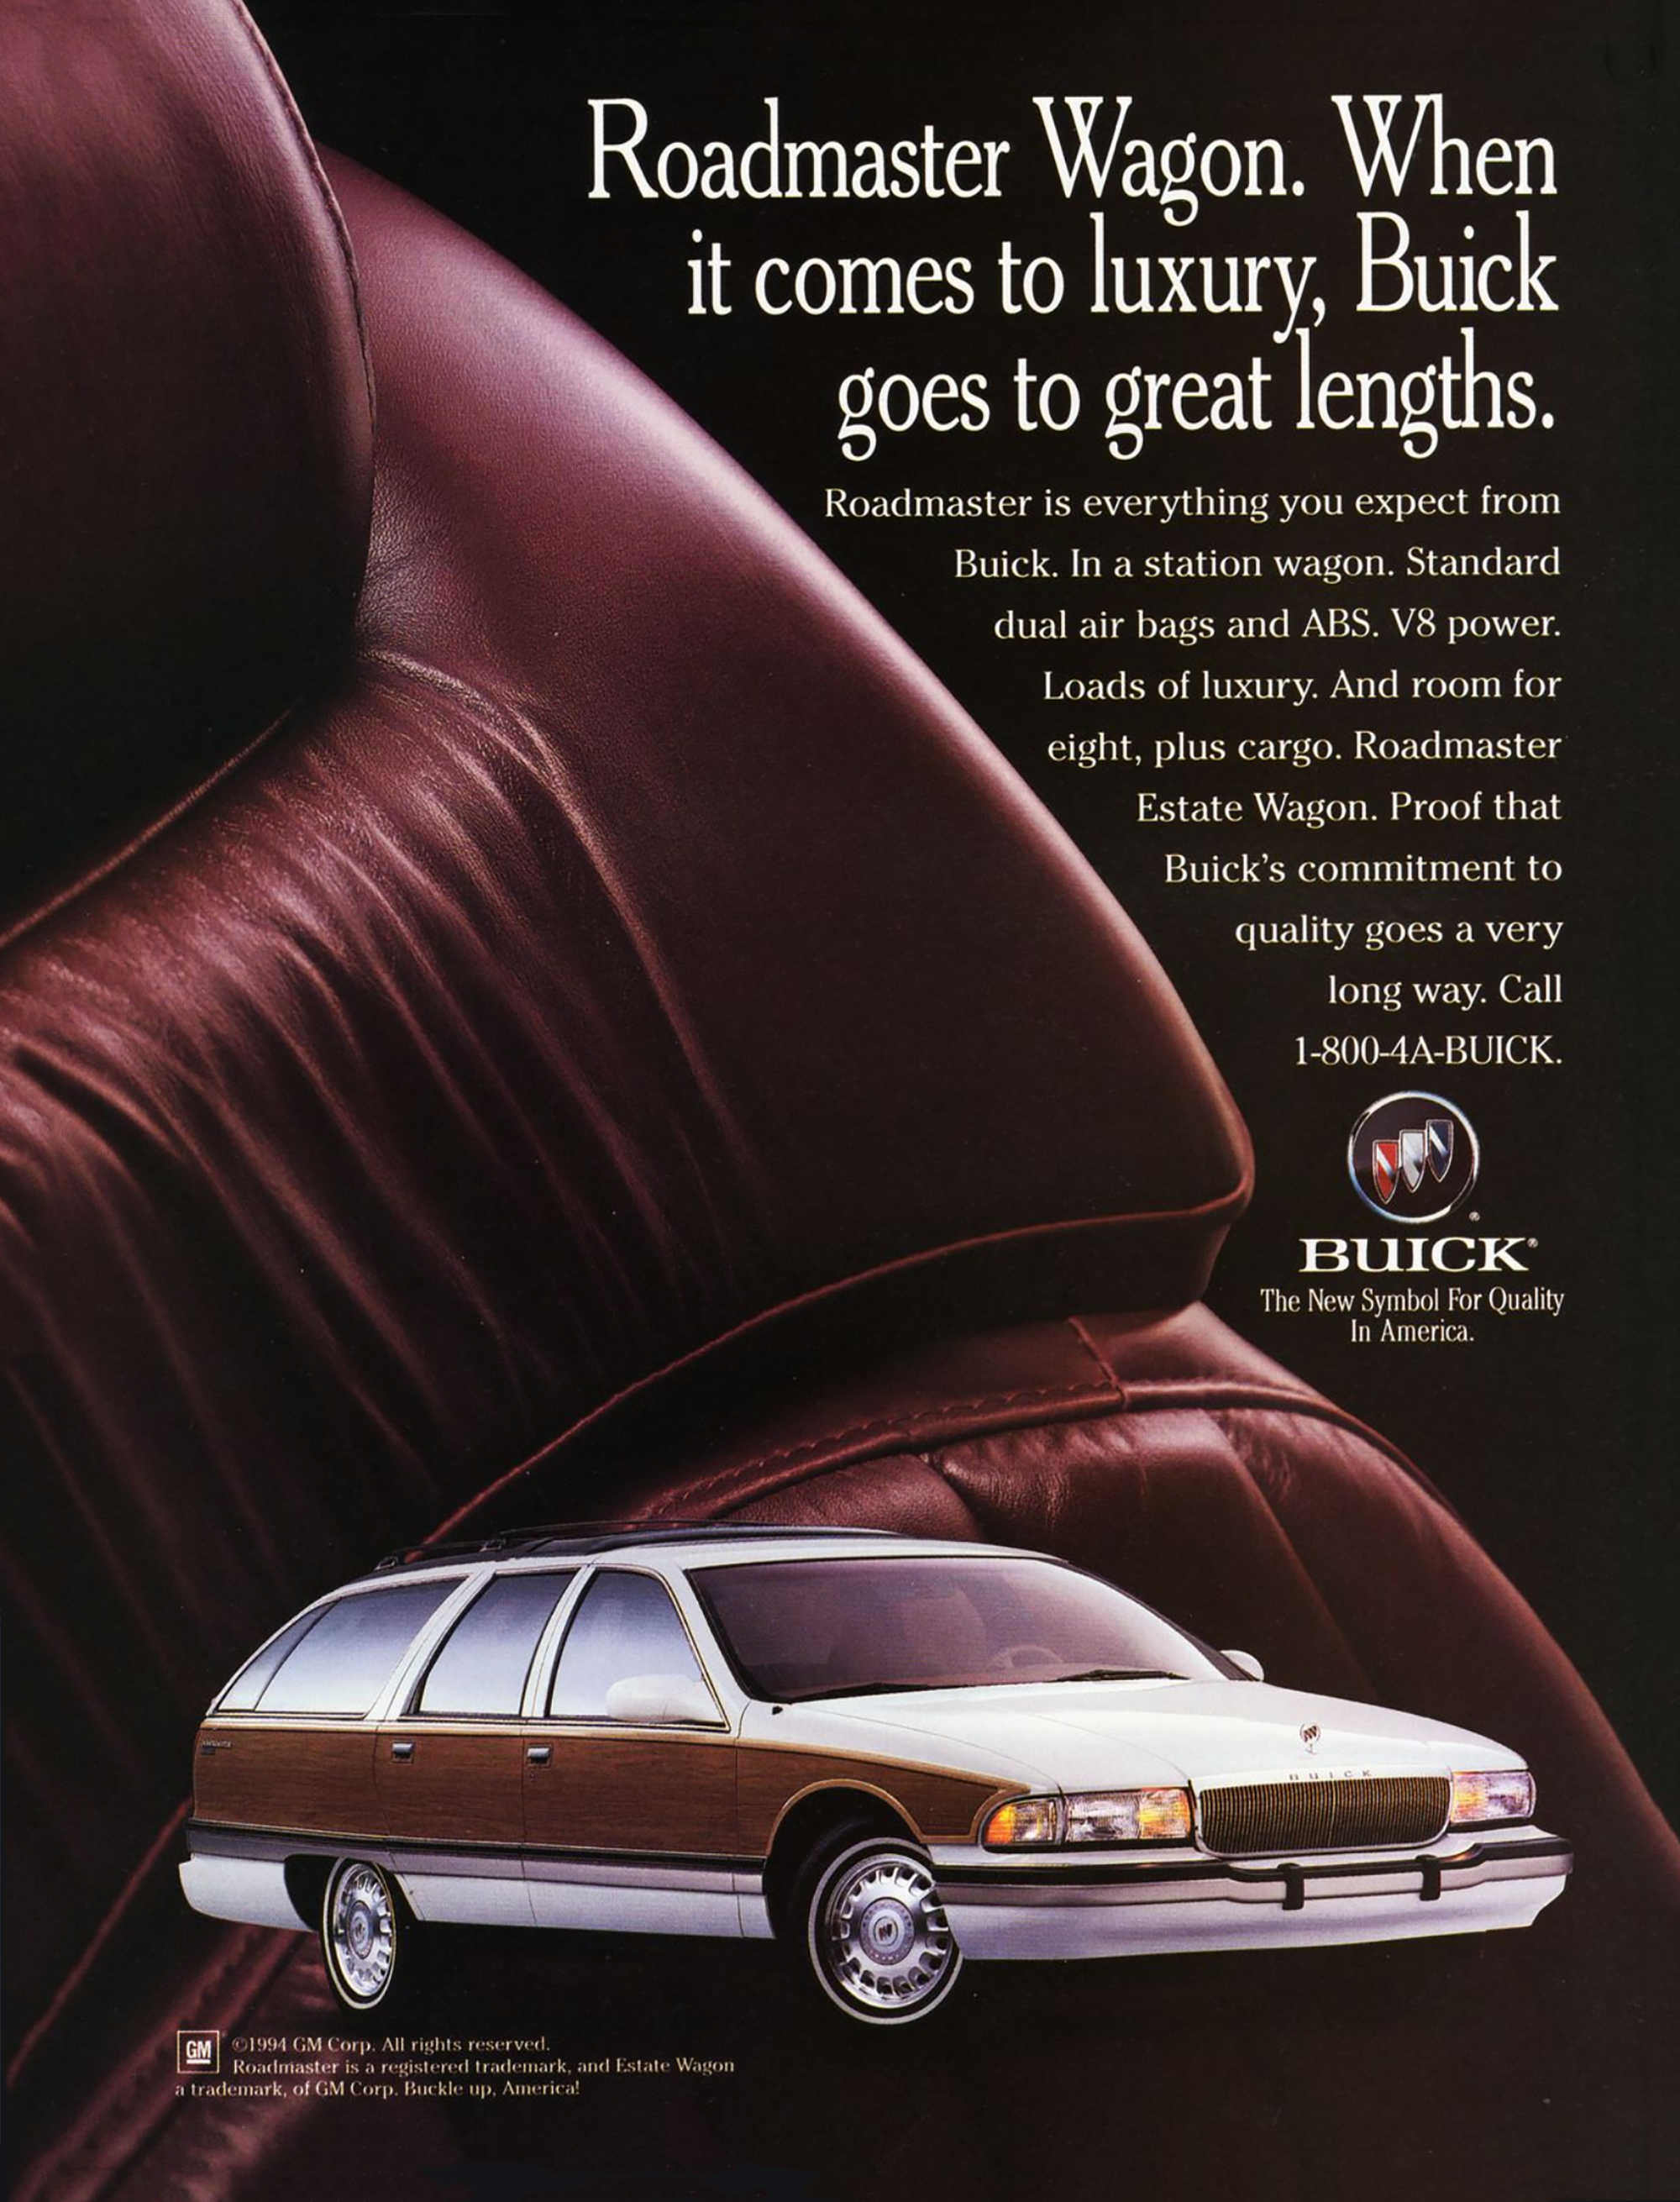 1995 Buick Roadmaster Wagon